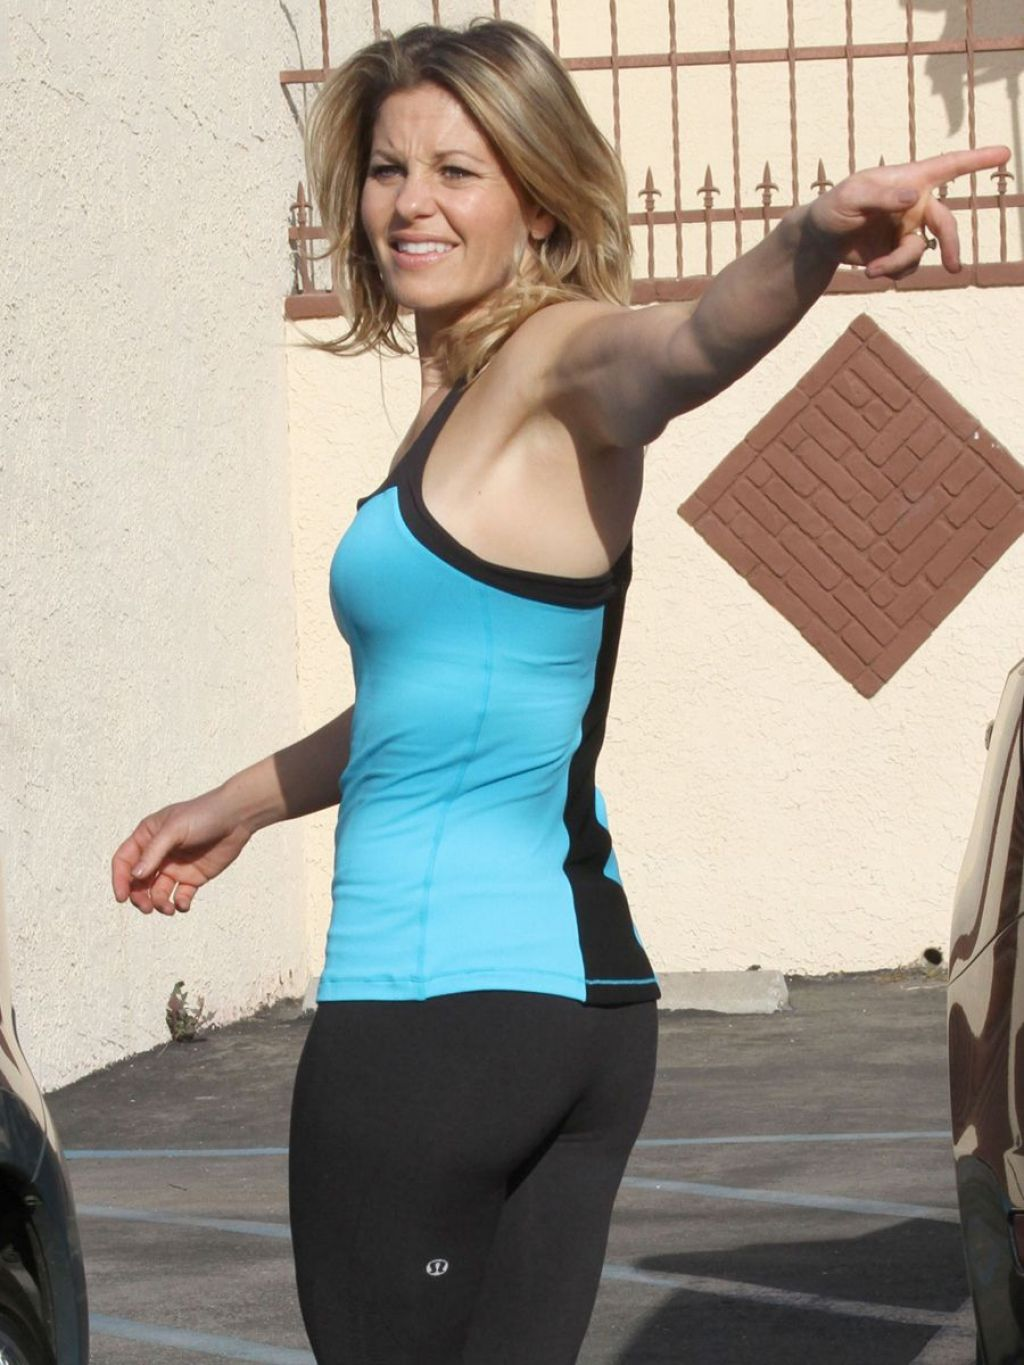 Candace Cameron Bure in Tights at DWTS Rehearsal (Part 2)